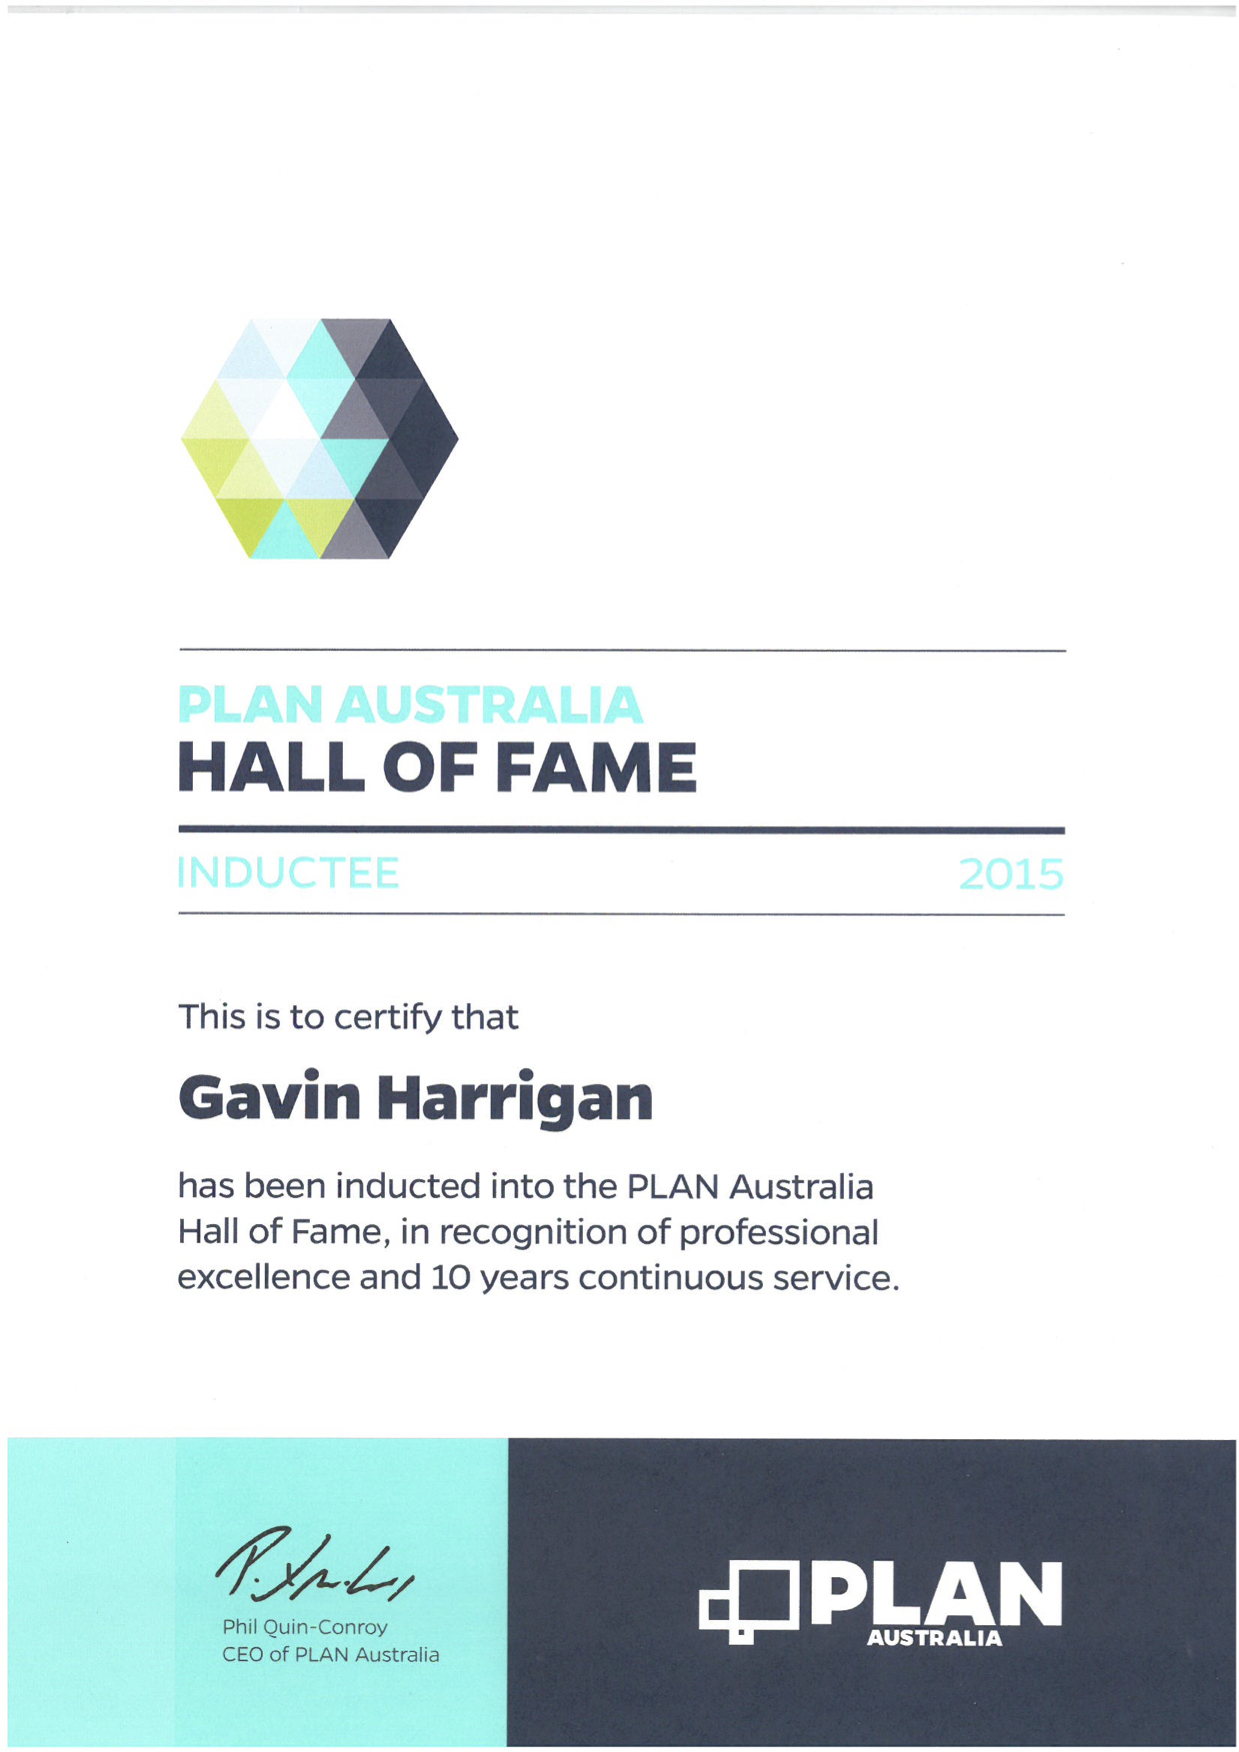 Plan Australia Hall of fame certificate awarded to Gavin